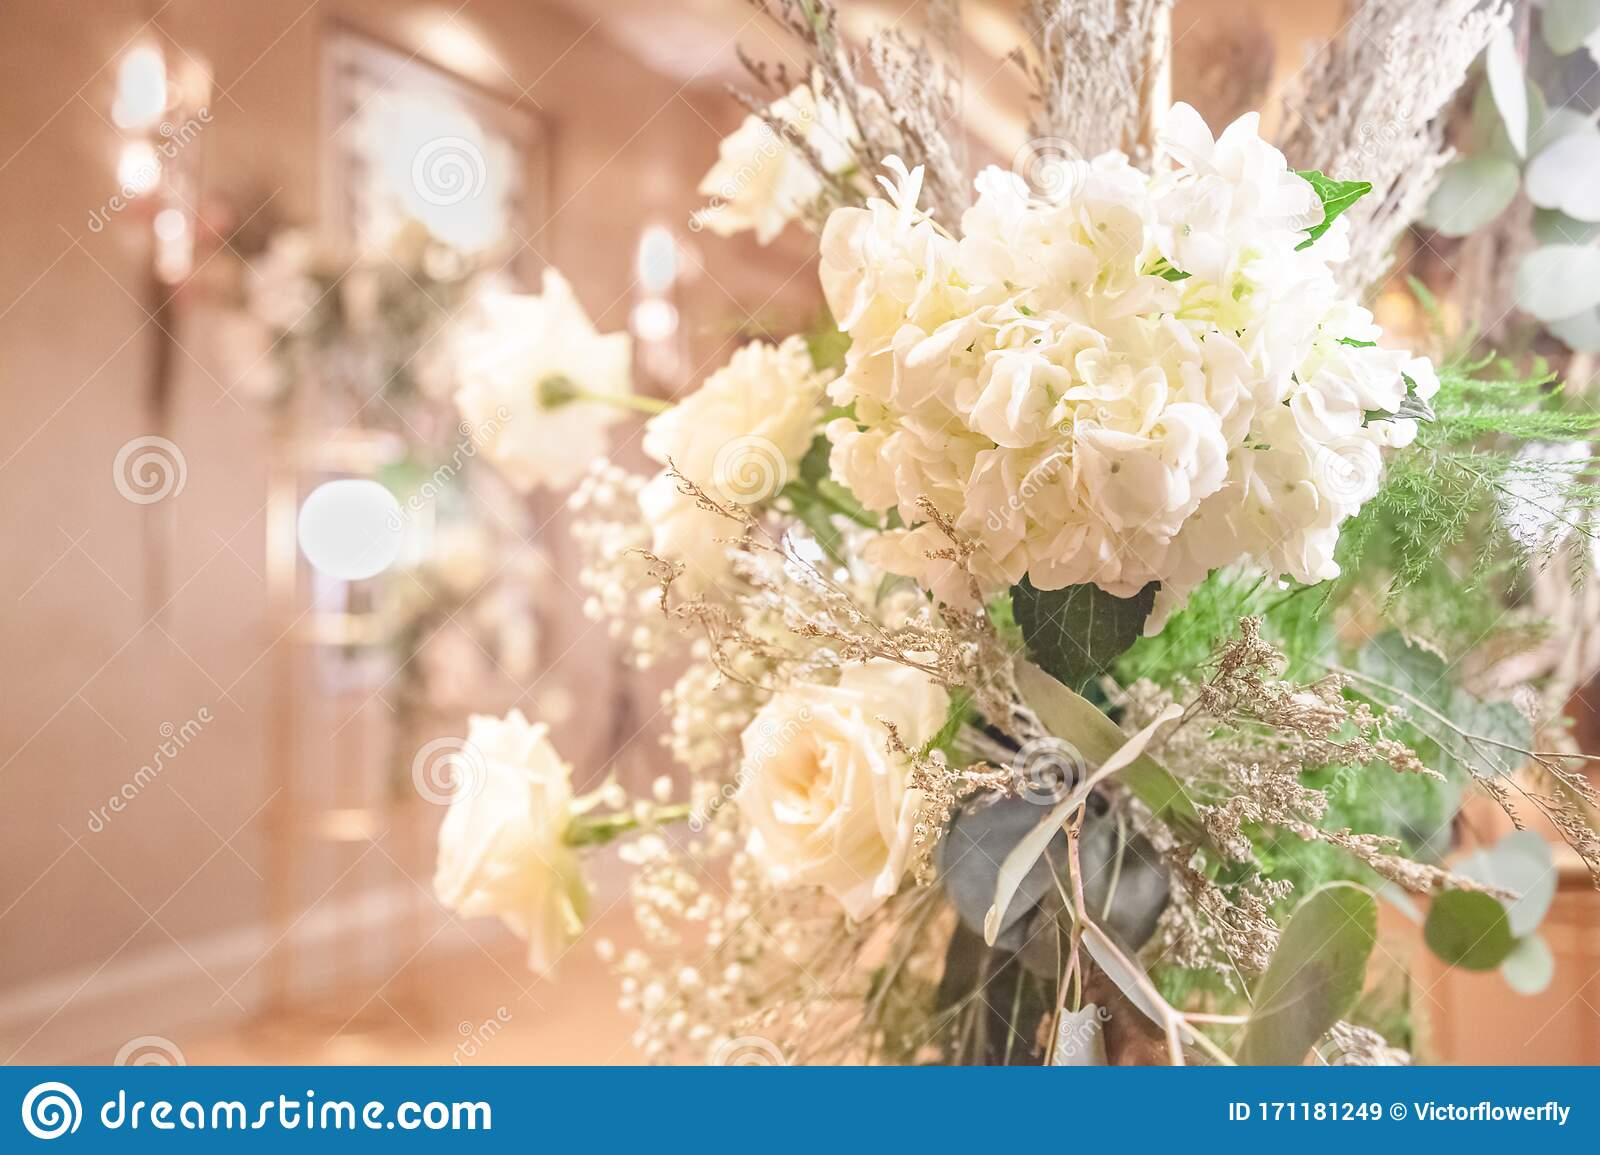 Blooming Fresh Flower Bouquet On Reception Table Background Decorative Ornamental Flower Nature Valentine Day Home Decoration Stock Image Image Of Decoration Background 171181249,Front New Dream House Home Design